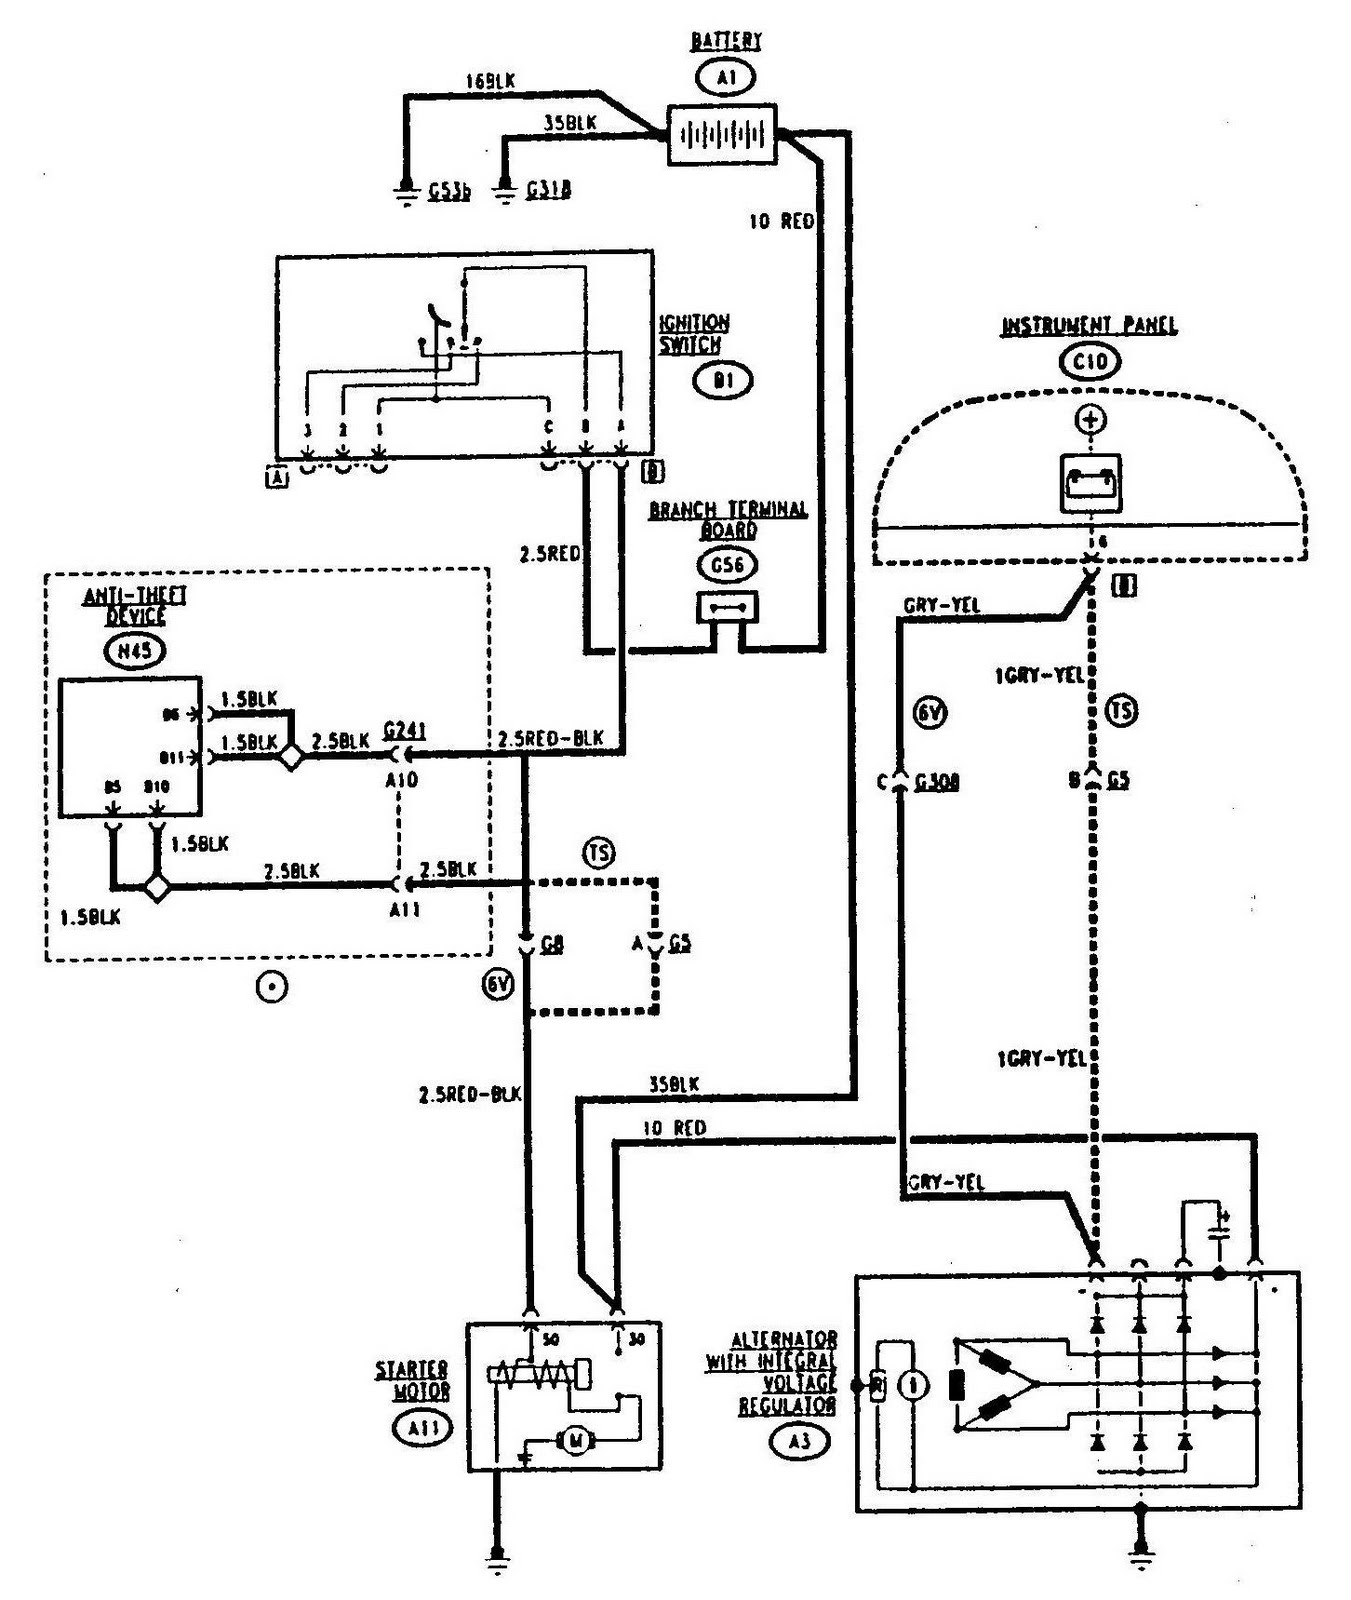 Small Block Chevy Alternator Wiring Alfa Romeo Starting And Charging Circuit Diagram Wiringdiagrams Blogspot Com 1351x1600